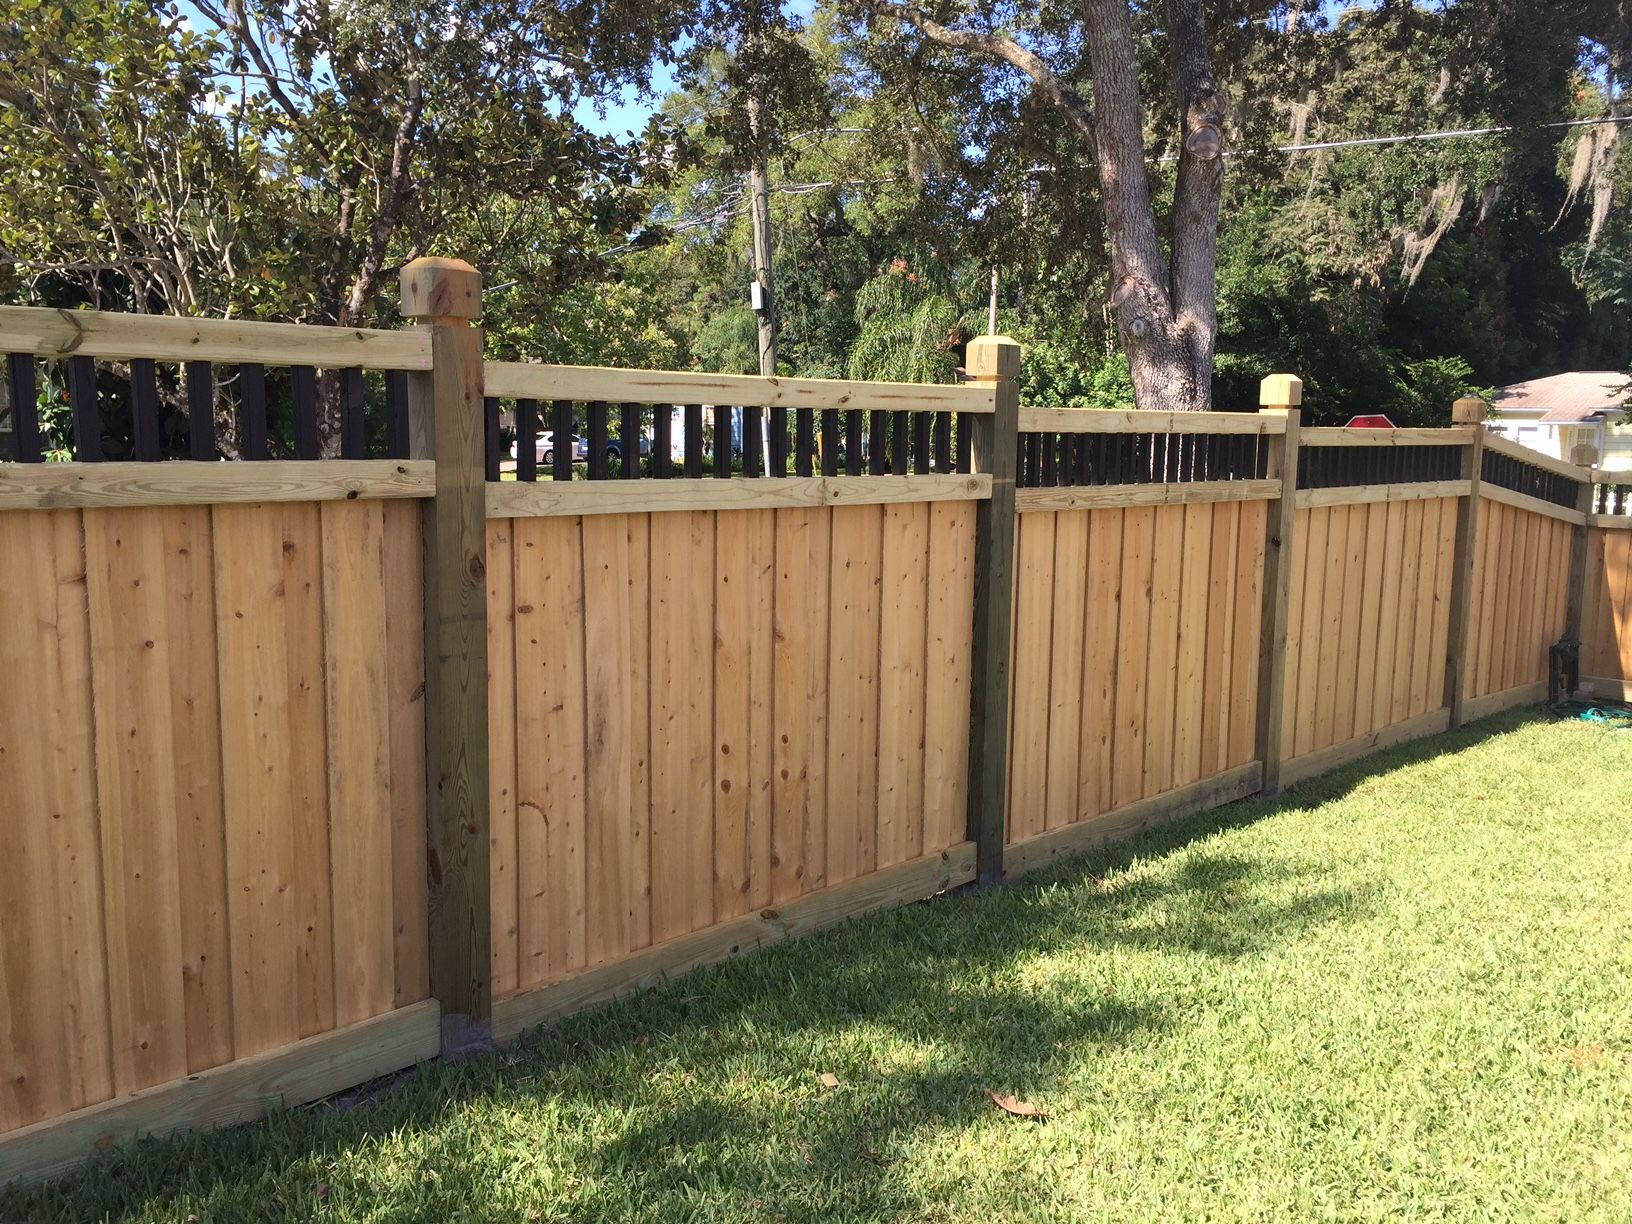 Custom Wood Privacy Fence Design By Mossy Oak Fence Company In